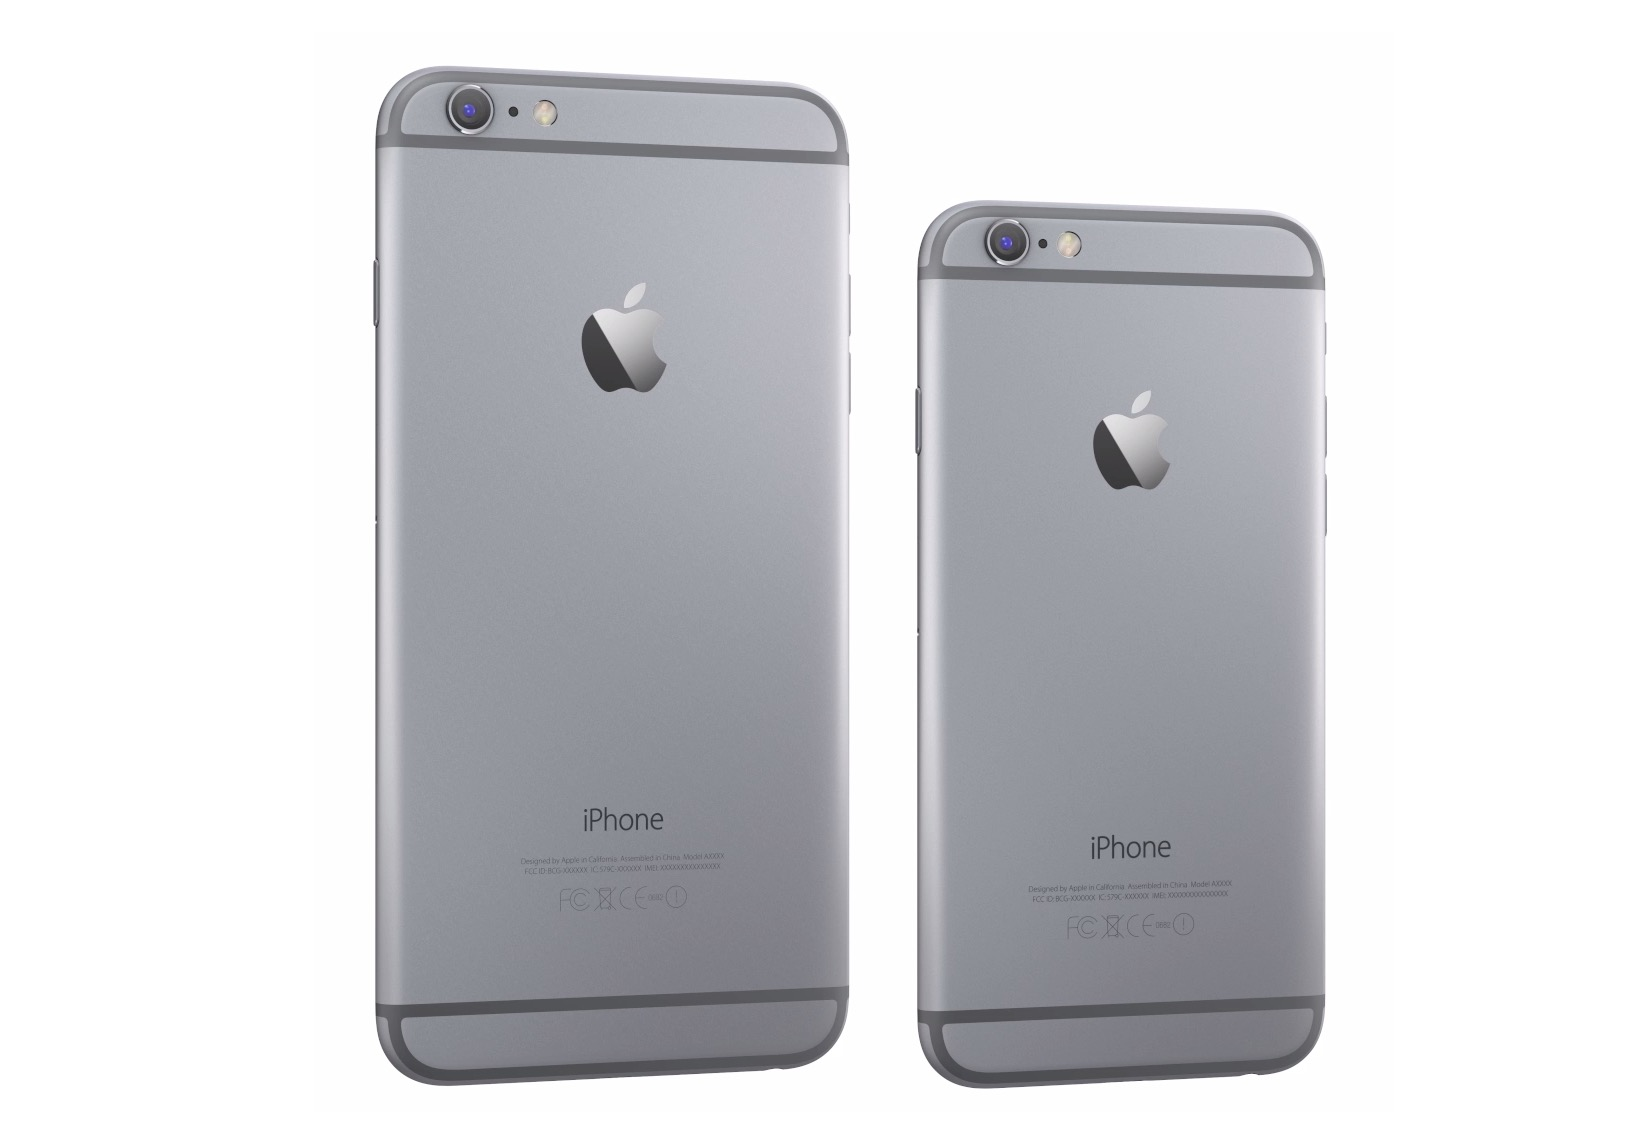 iPhone 6 and 6 Plus in Space Grey